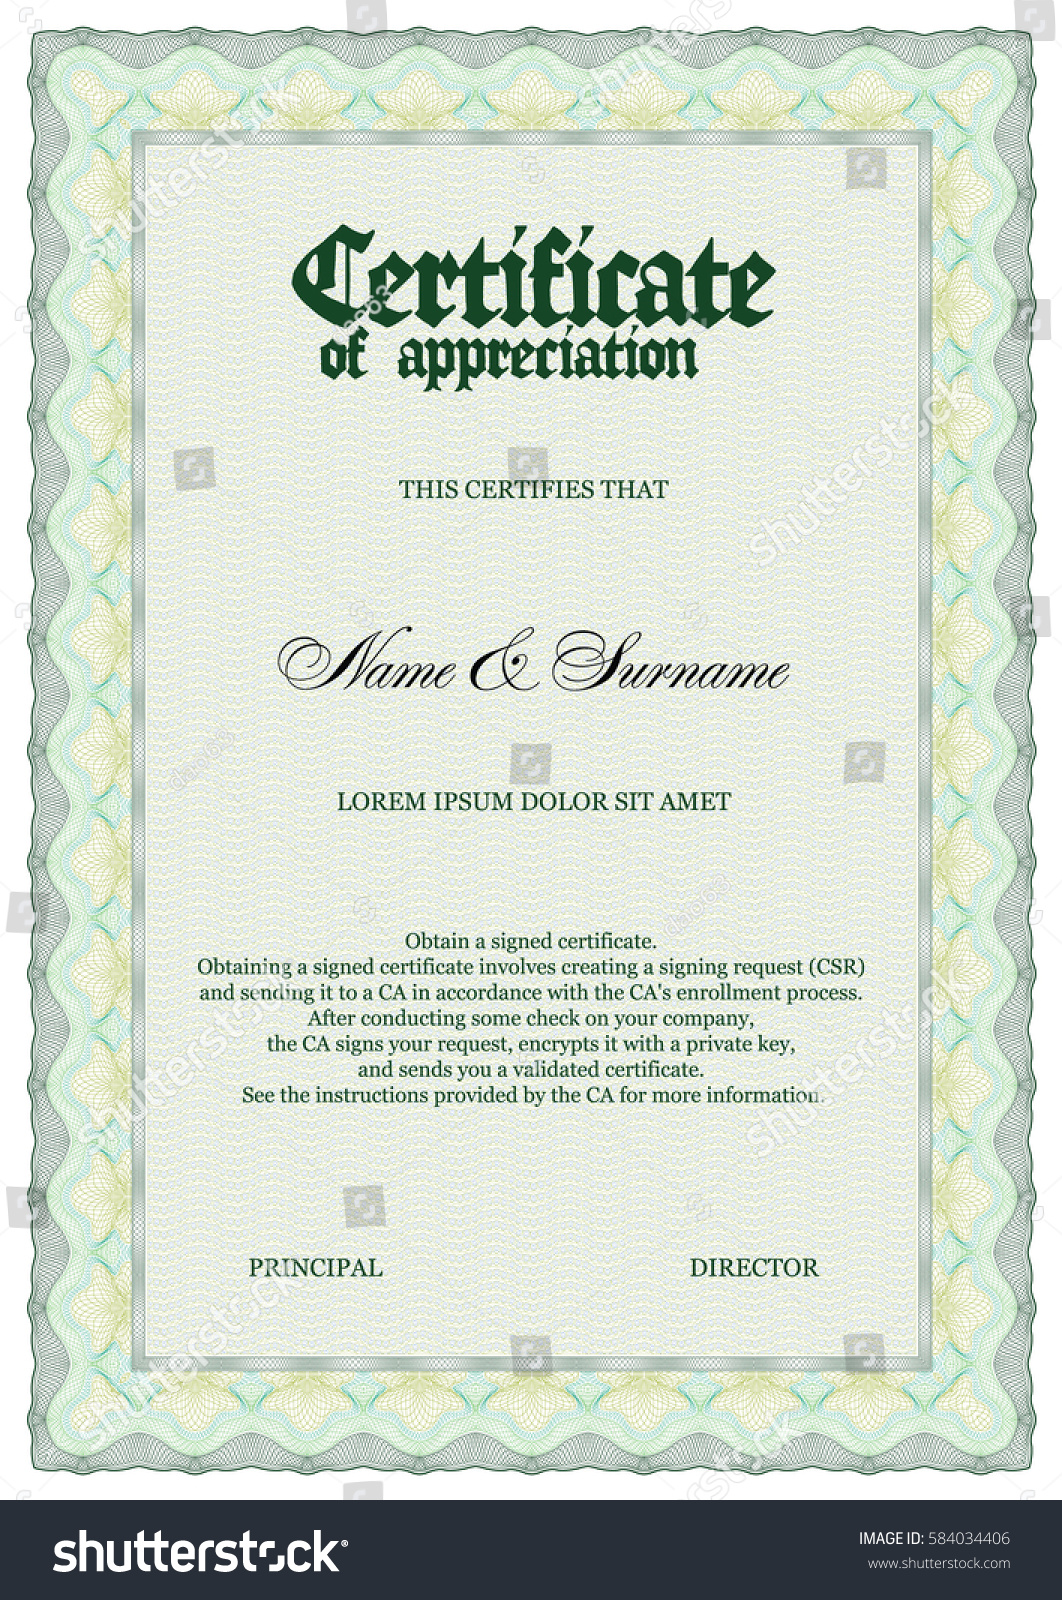 Certificate template size gallery templates example free download vector certificate template size a4 stock vector 584034406 vector certificate template size a4 alramifo gallery yelopaper Gallery